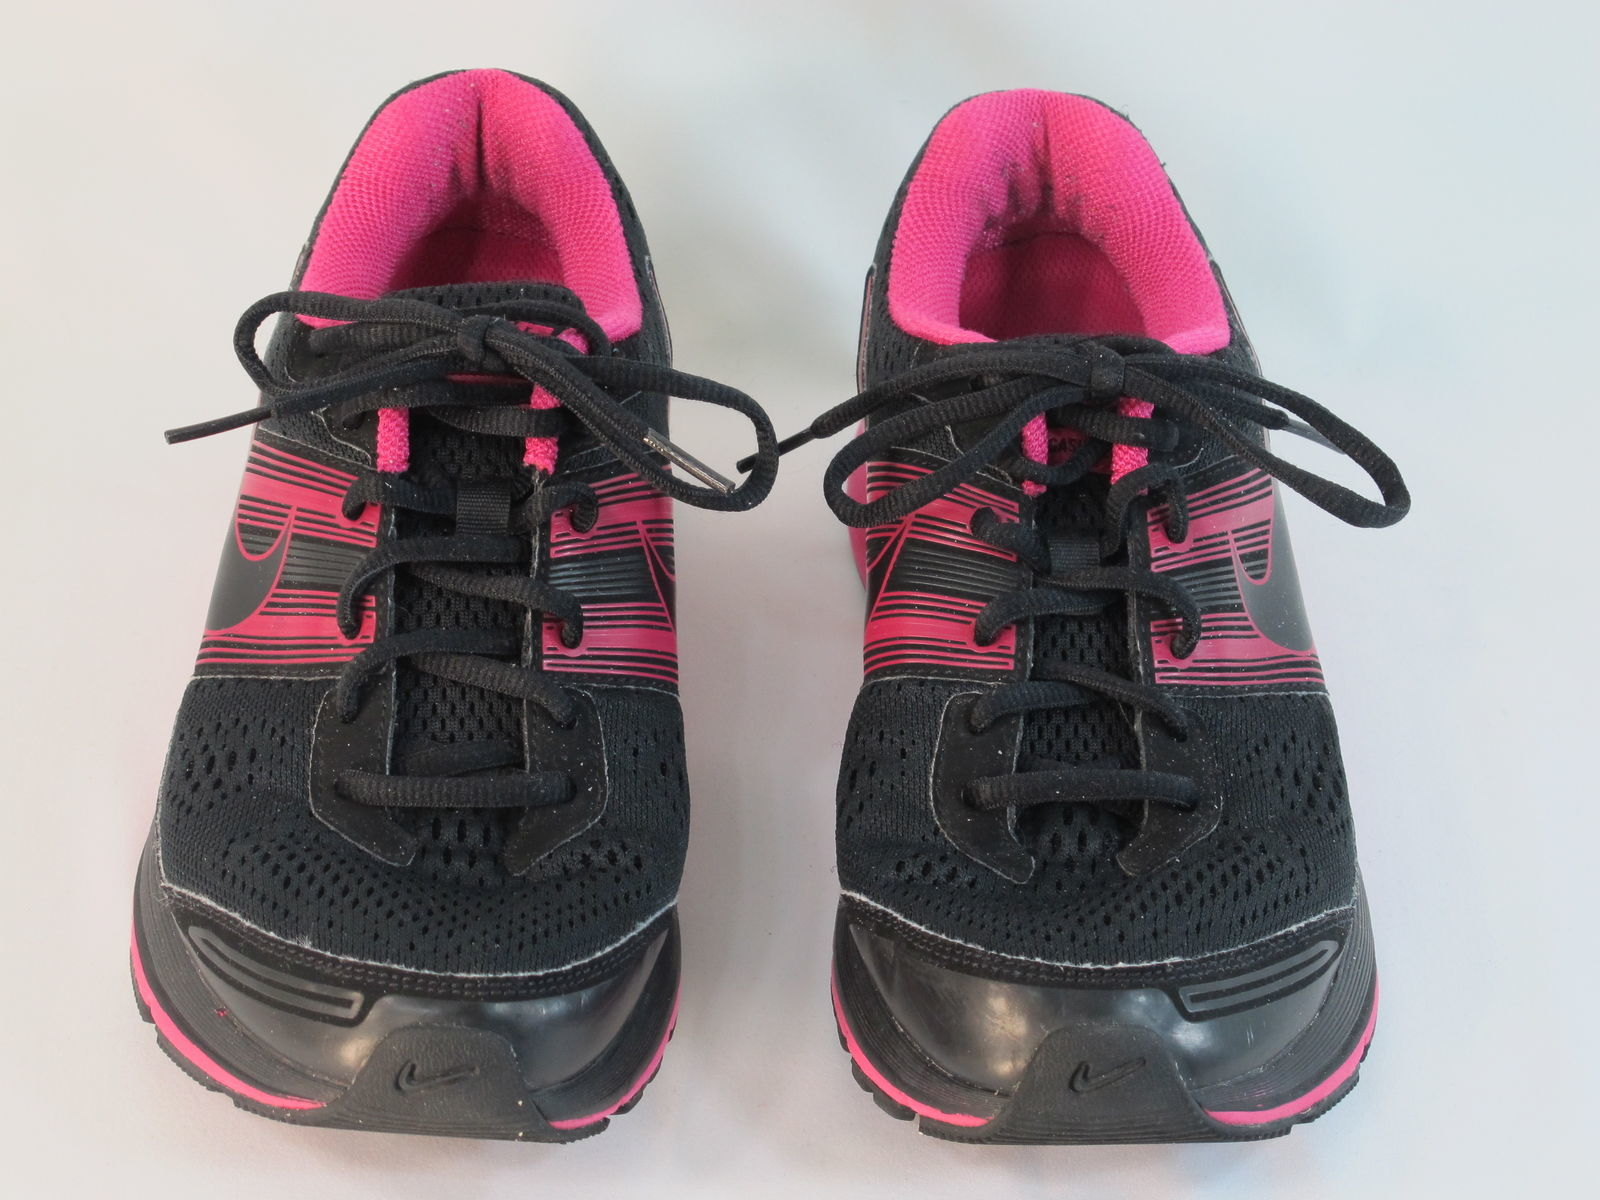 free shipping 5ecd7 1dbad Nike Air Zoom Pegasus+ 29 Running Shoes Women s Size 8.5 US Excellent Plus